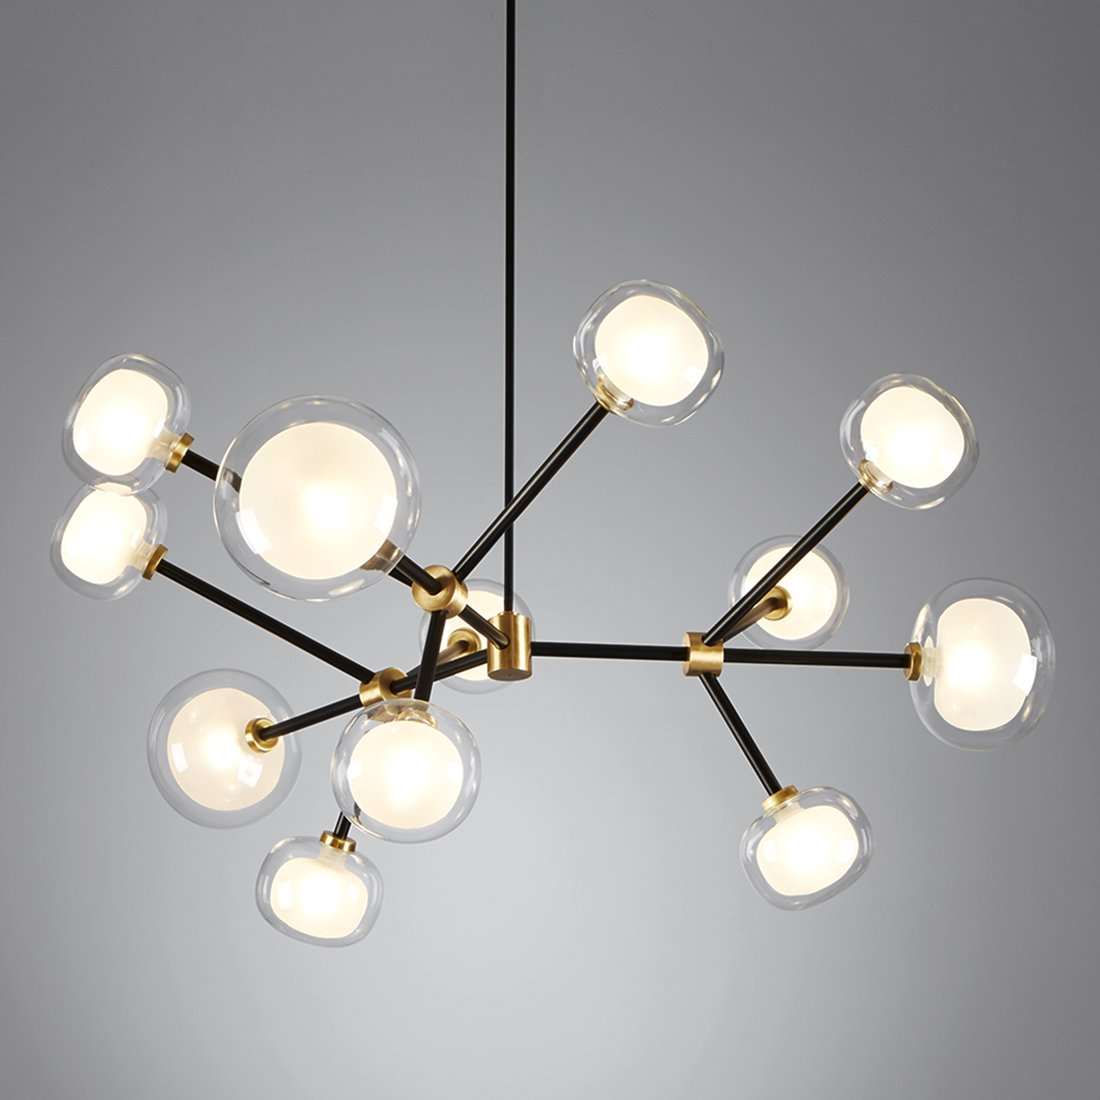 Shop Pendant Lights & Chandeliers at Urban Avenue